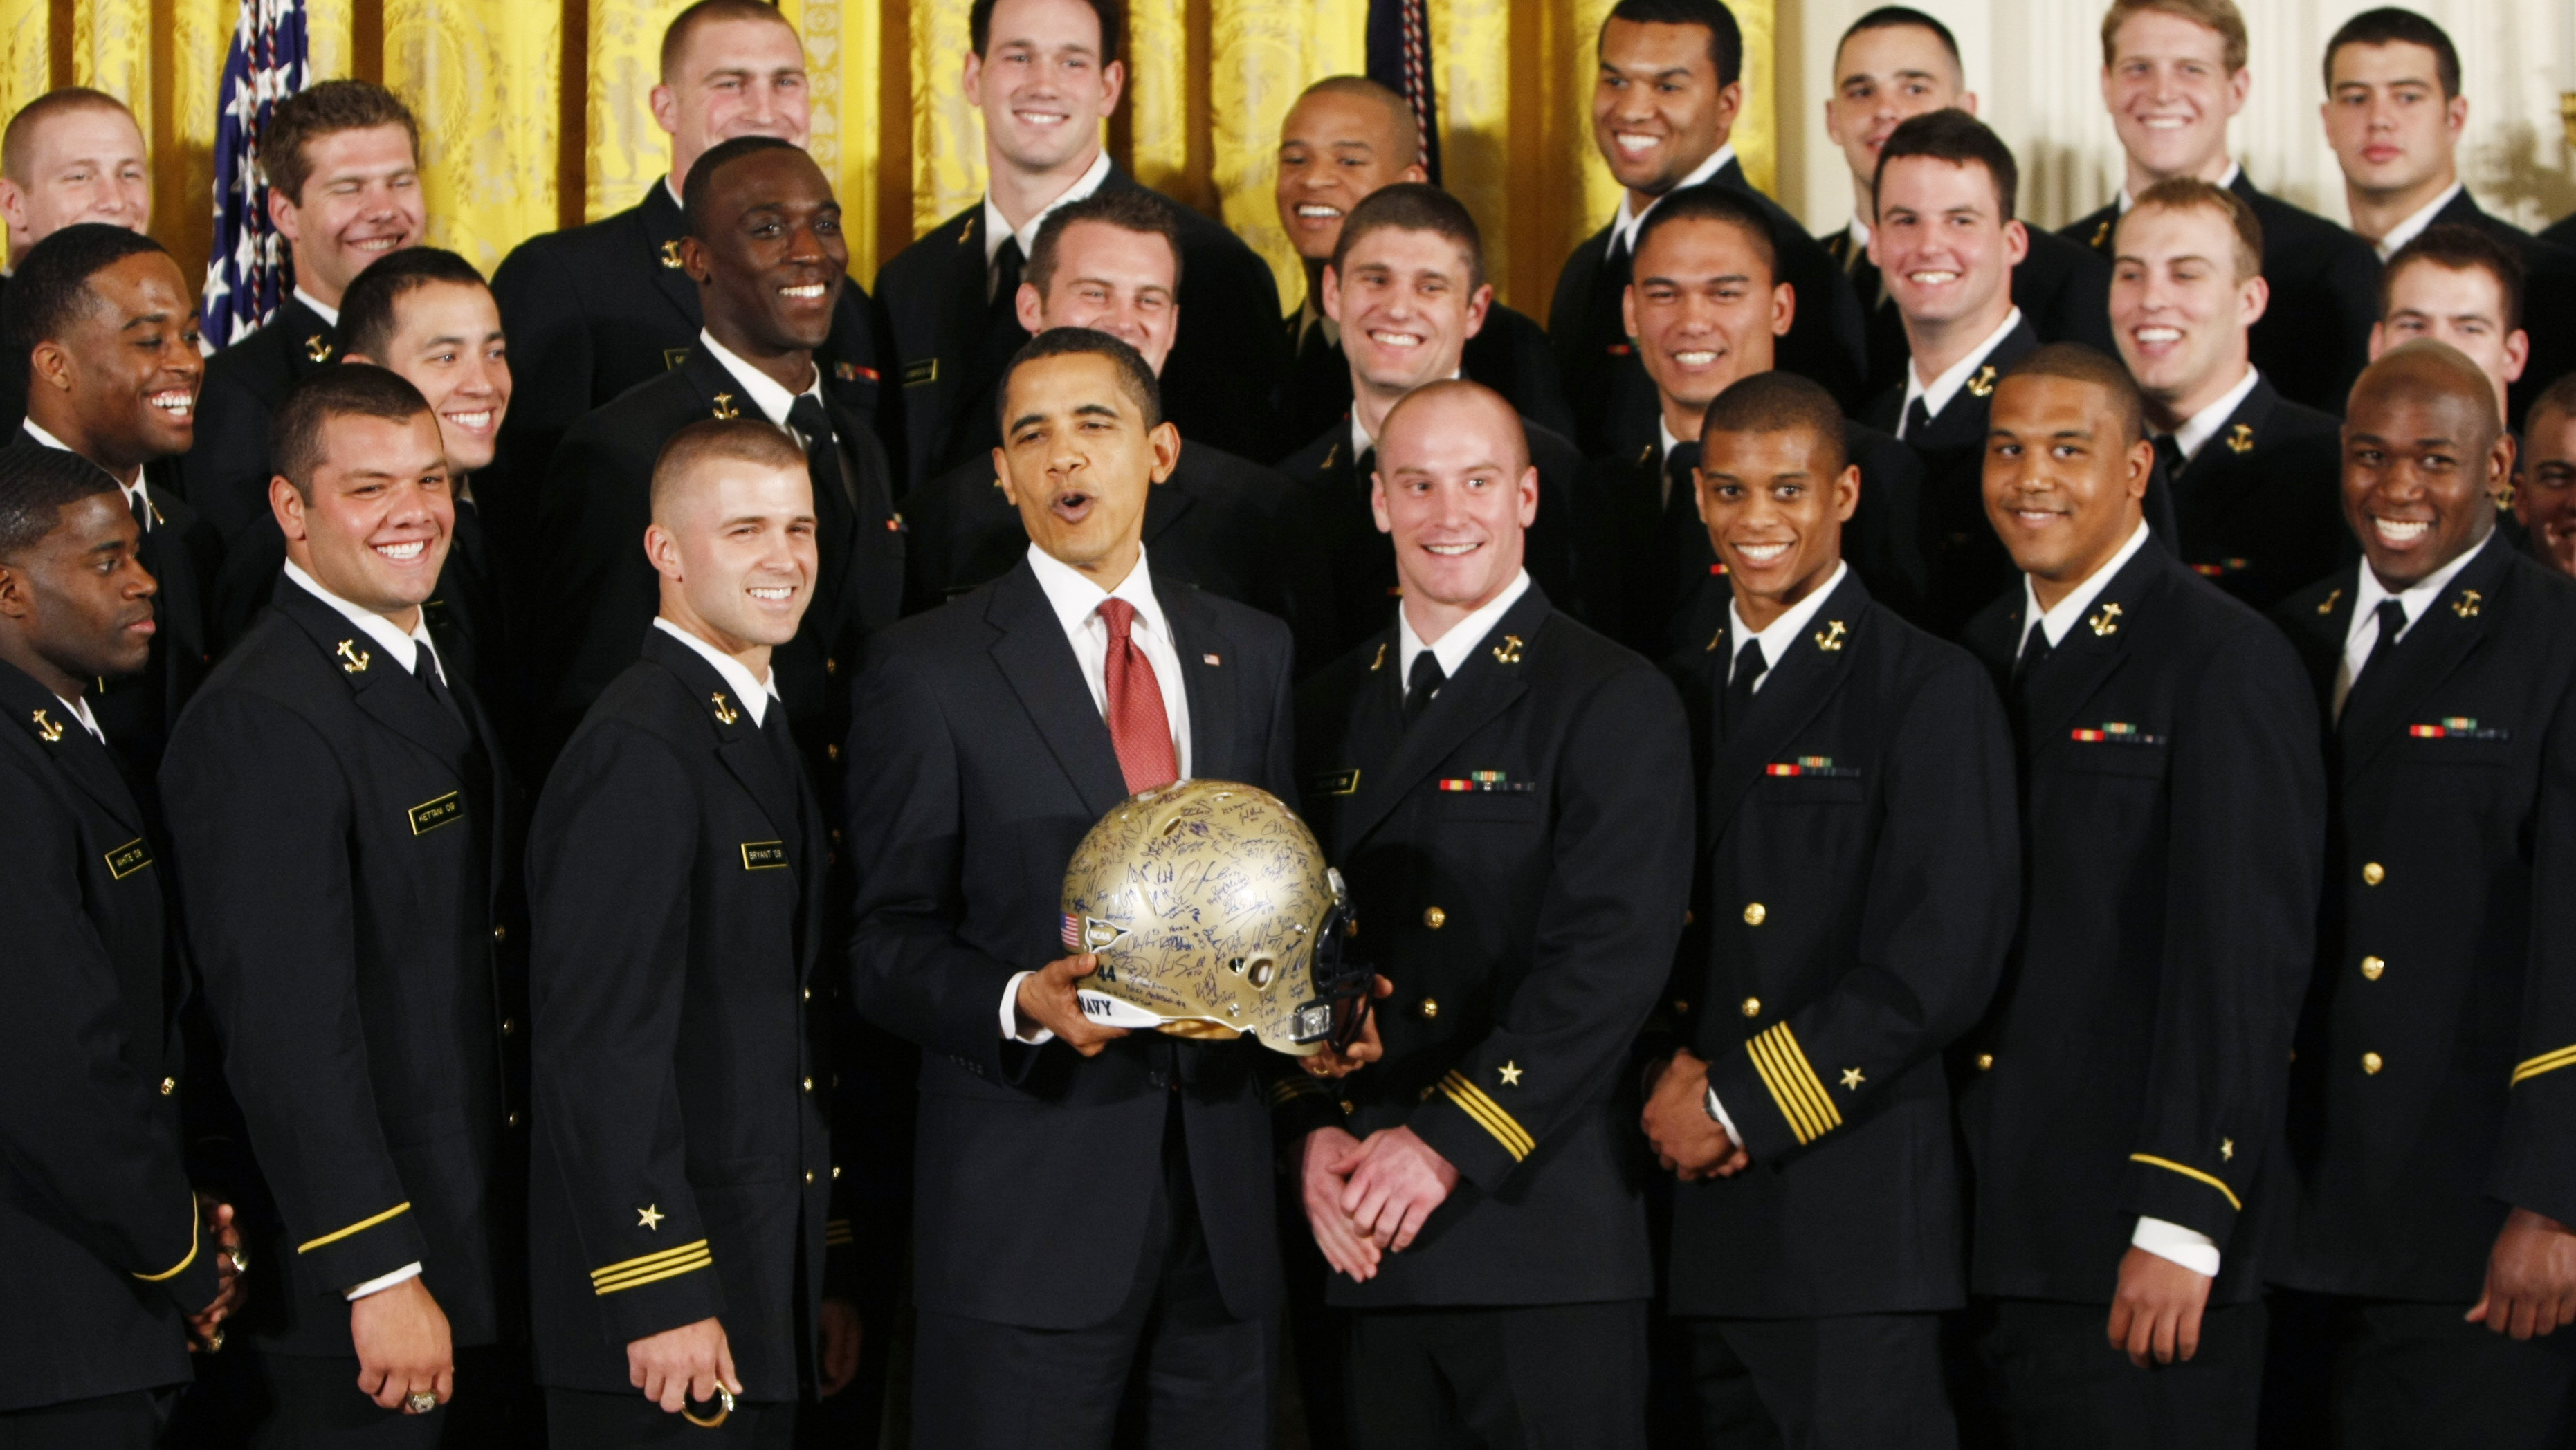 President Barack Obama poses with an autographed helmet given to him in the East Room of the White House in Washington, Tuesday, April 21, 2009, during a ceremony where he presented the Commander in Chief trophy to the U.S. Naval Academy football team. (AP Photo/Gerald Herbert)